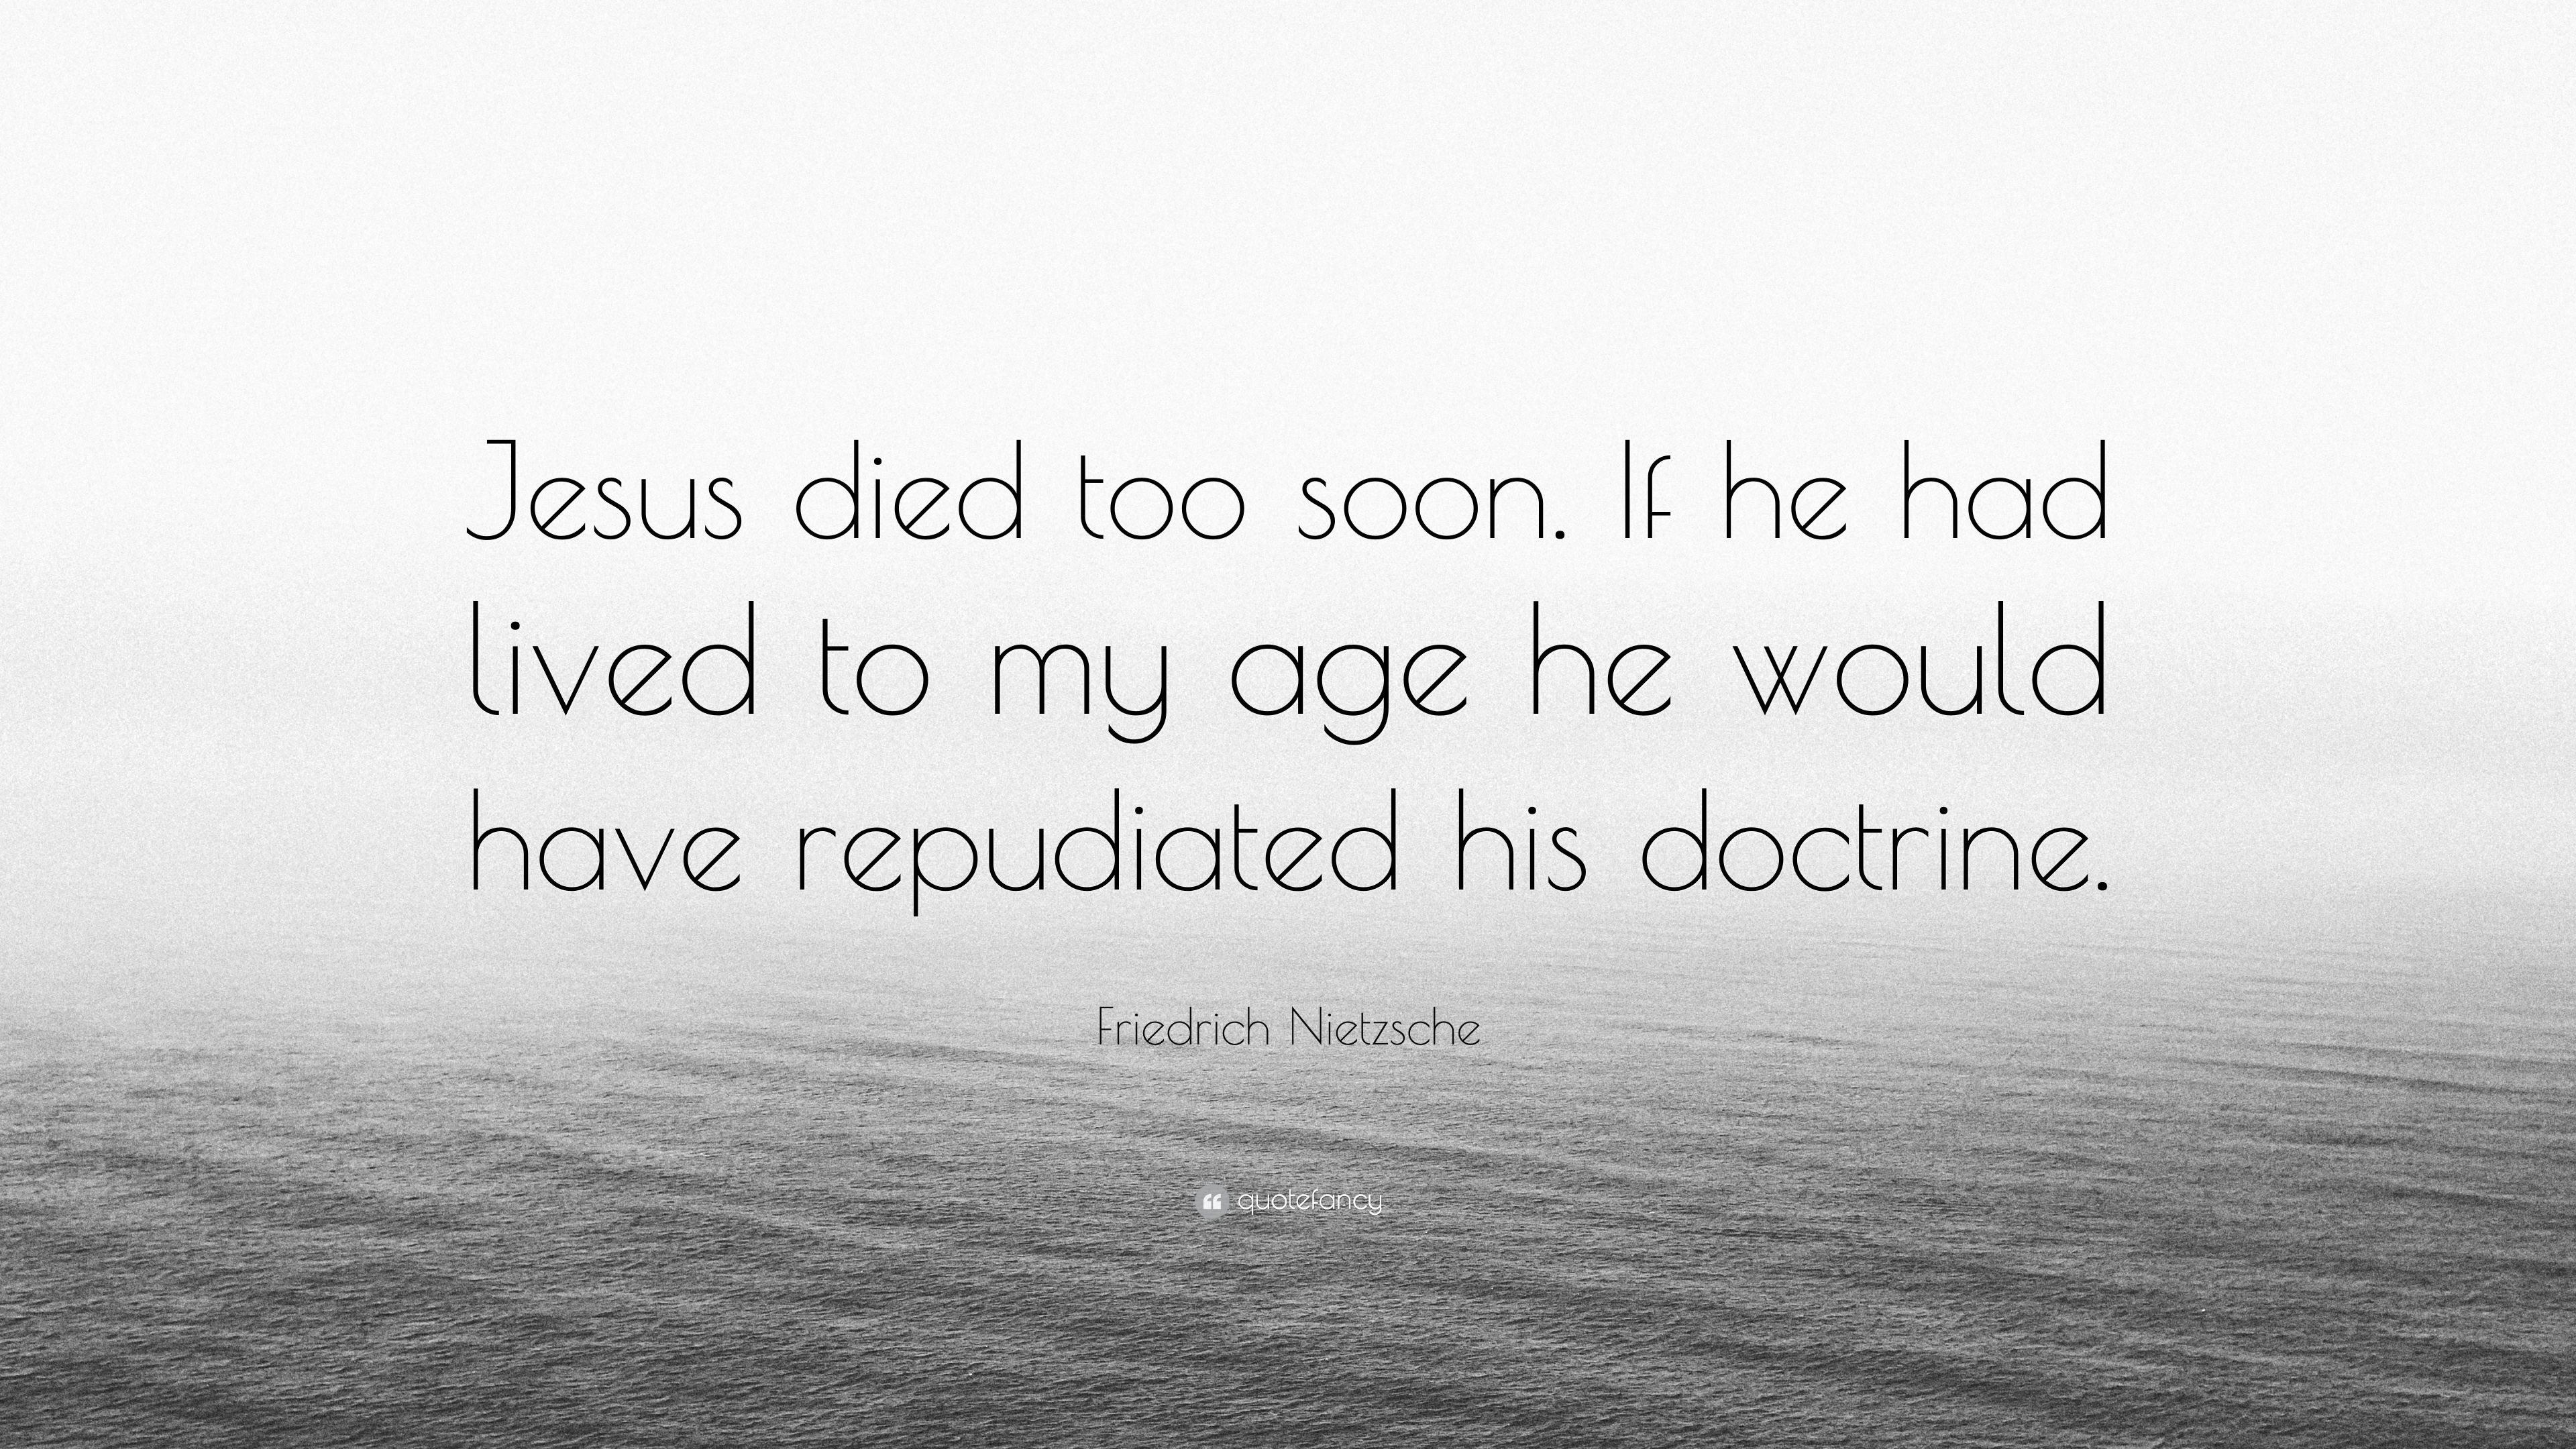 Friedrich Nietzsche Quote Jesus Died Too Soon If He Had Lived To My Age He Would Have Repudiated His Doctrine 7 Wallpapers Quotefancy